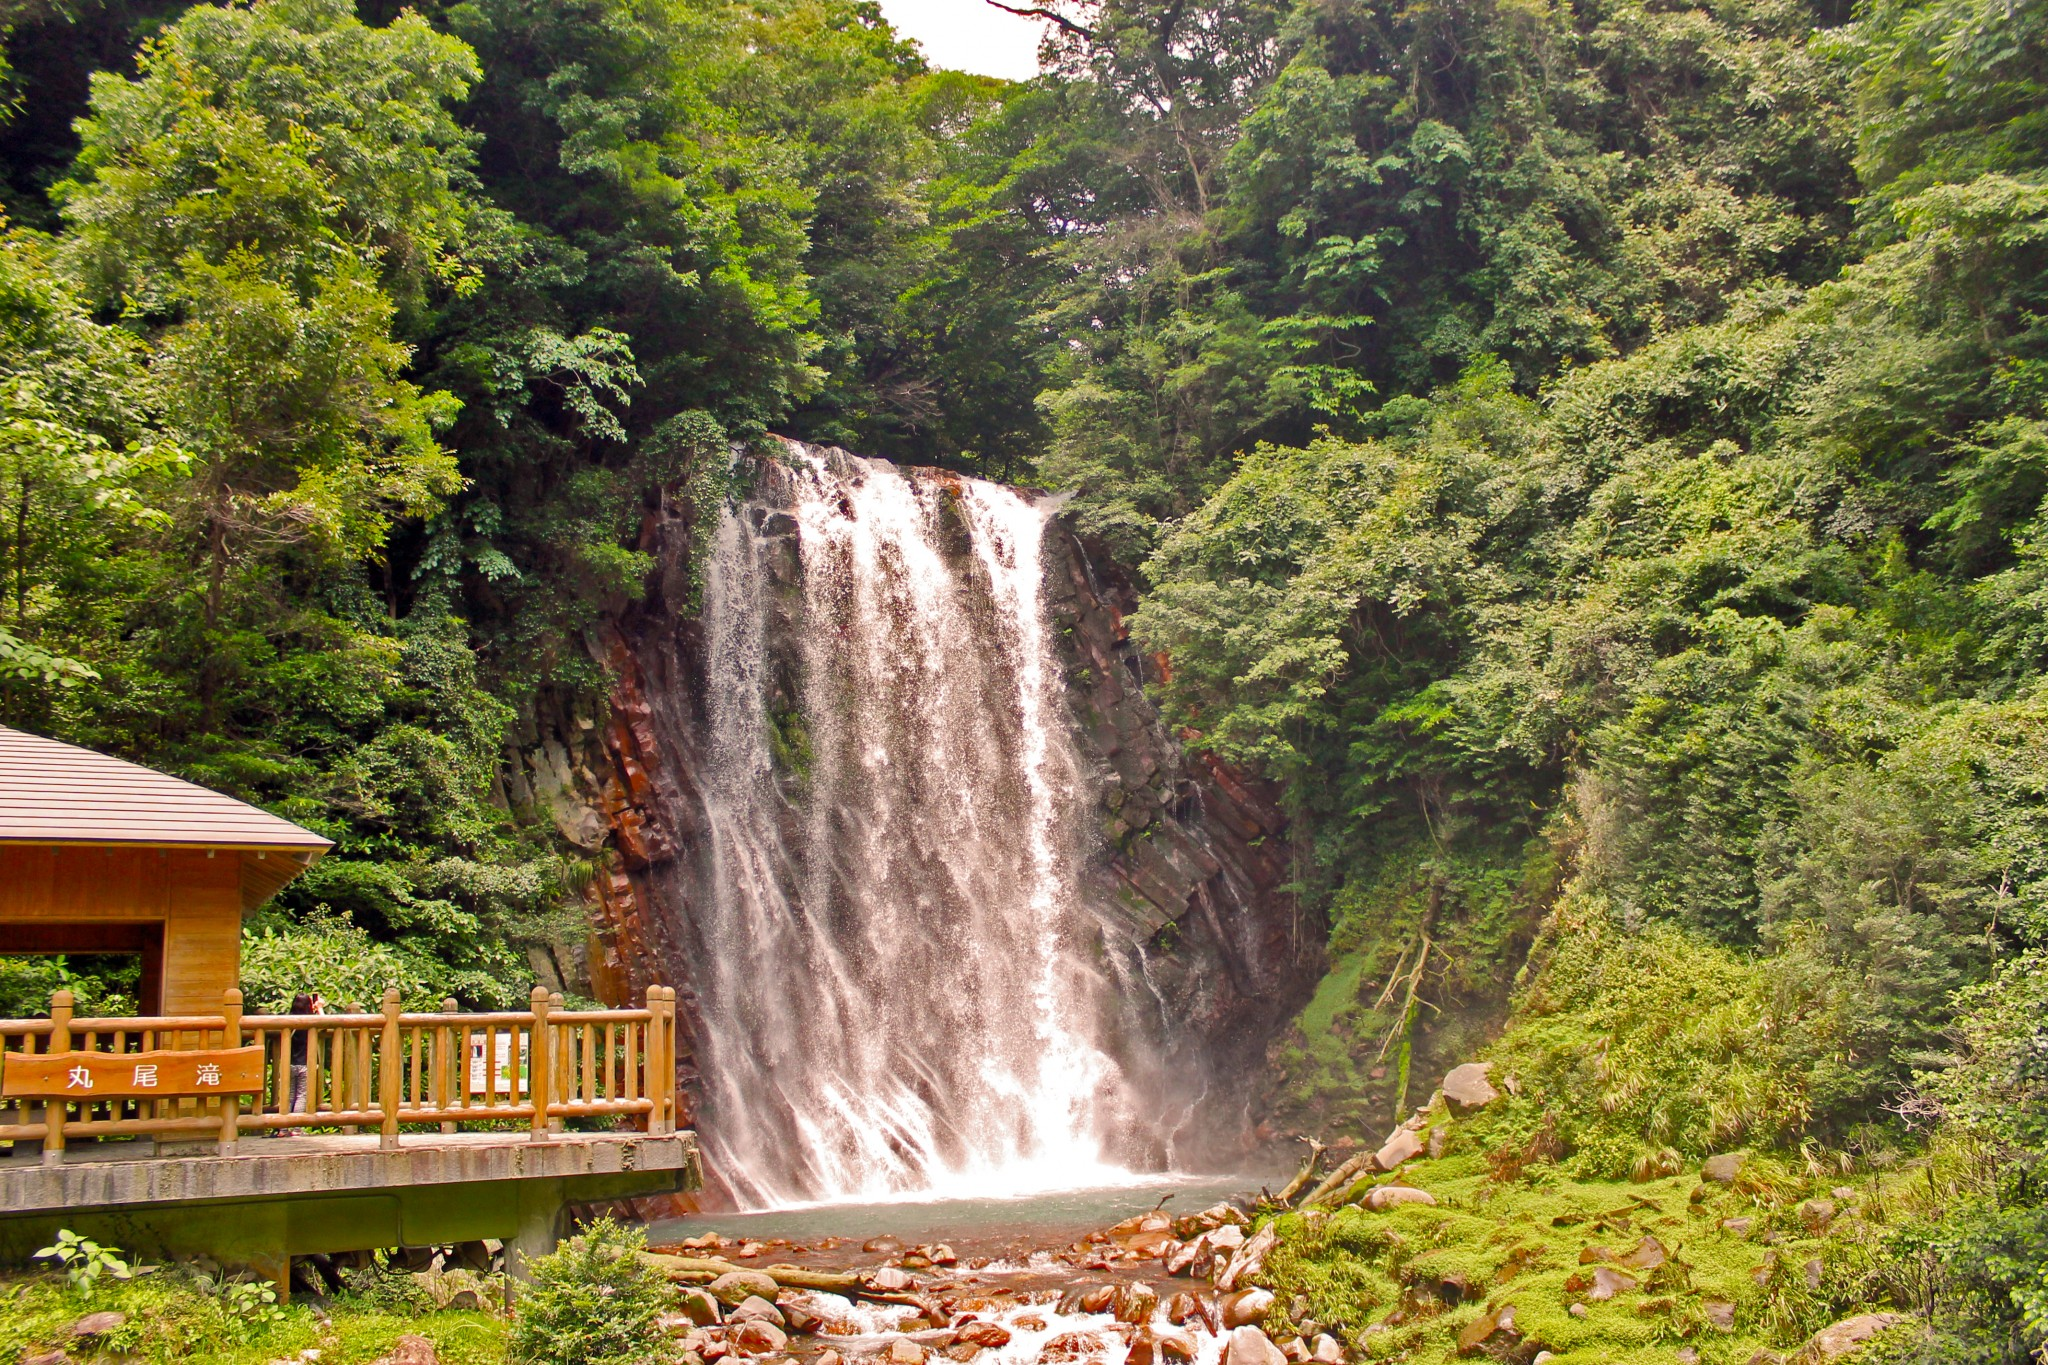 Fall in love with the nature and waterfalls around Kagoshima